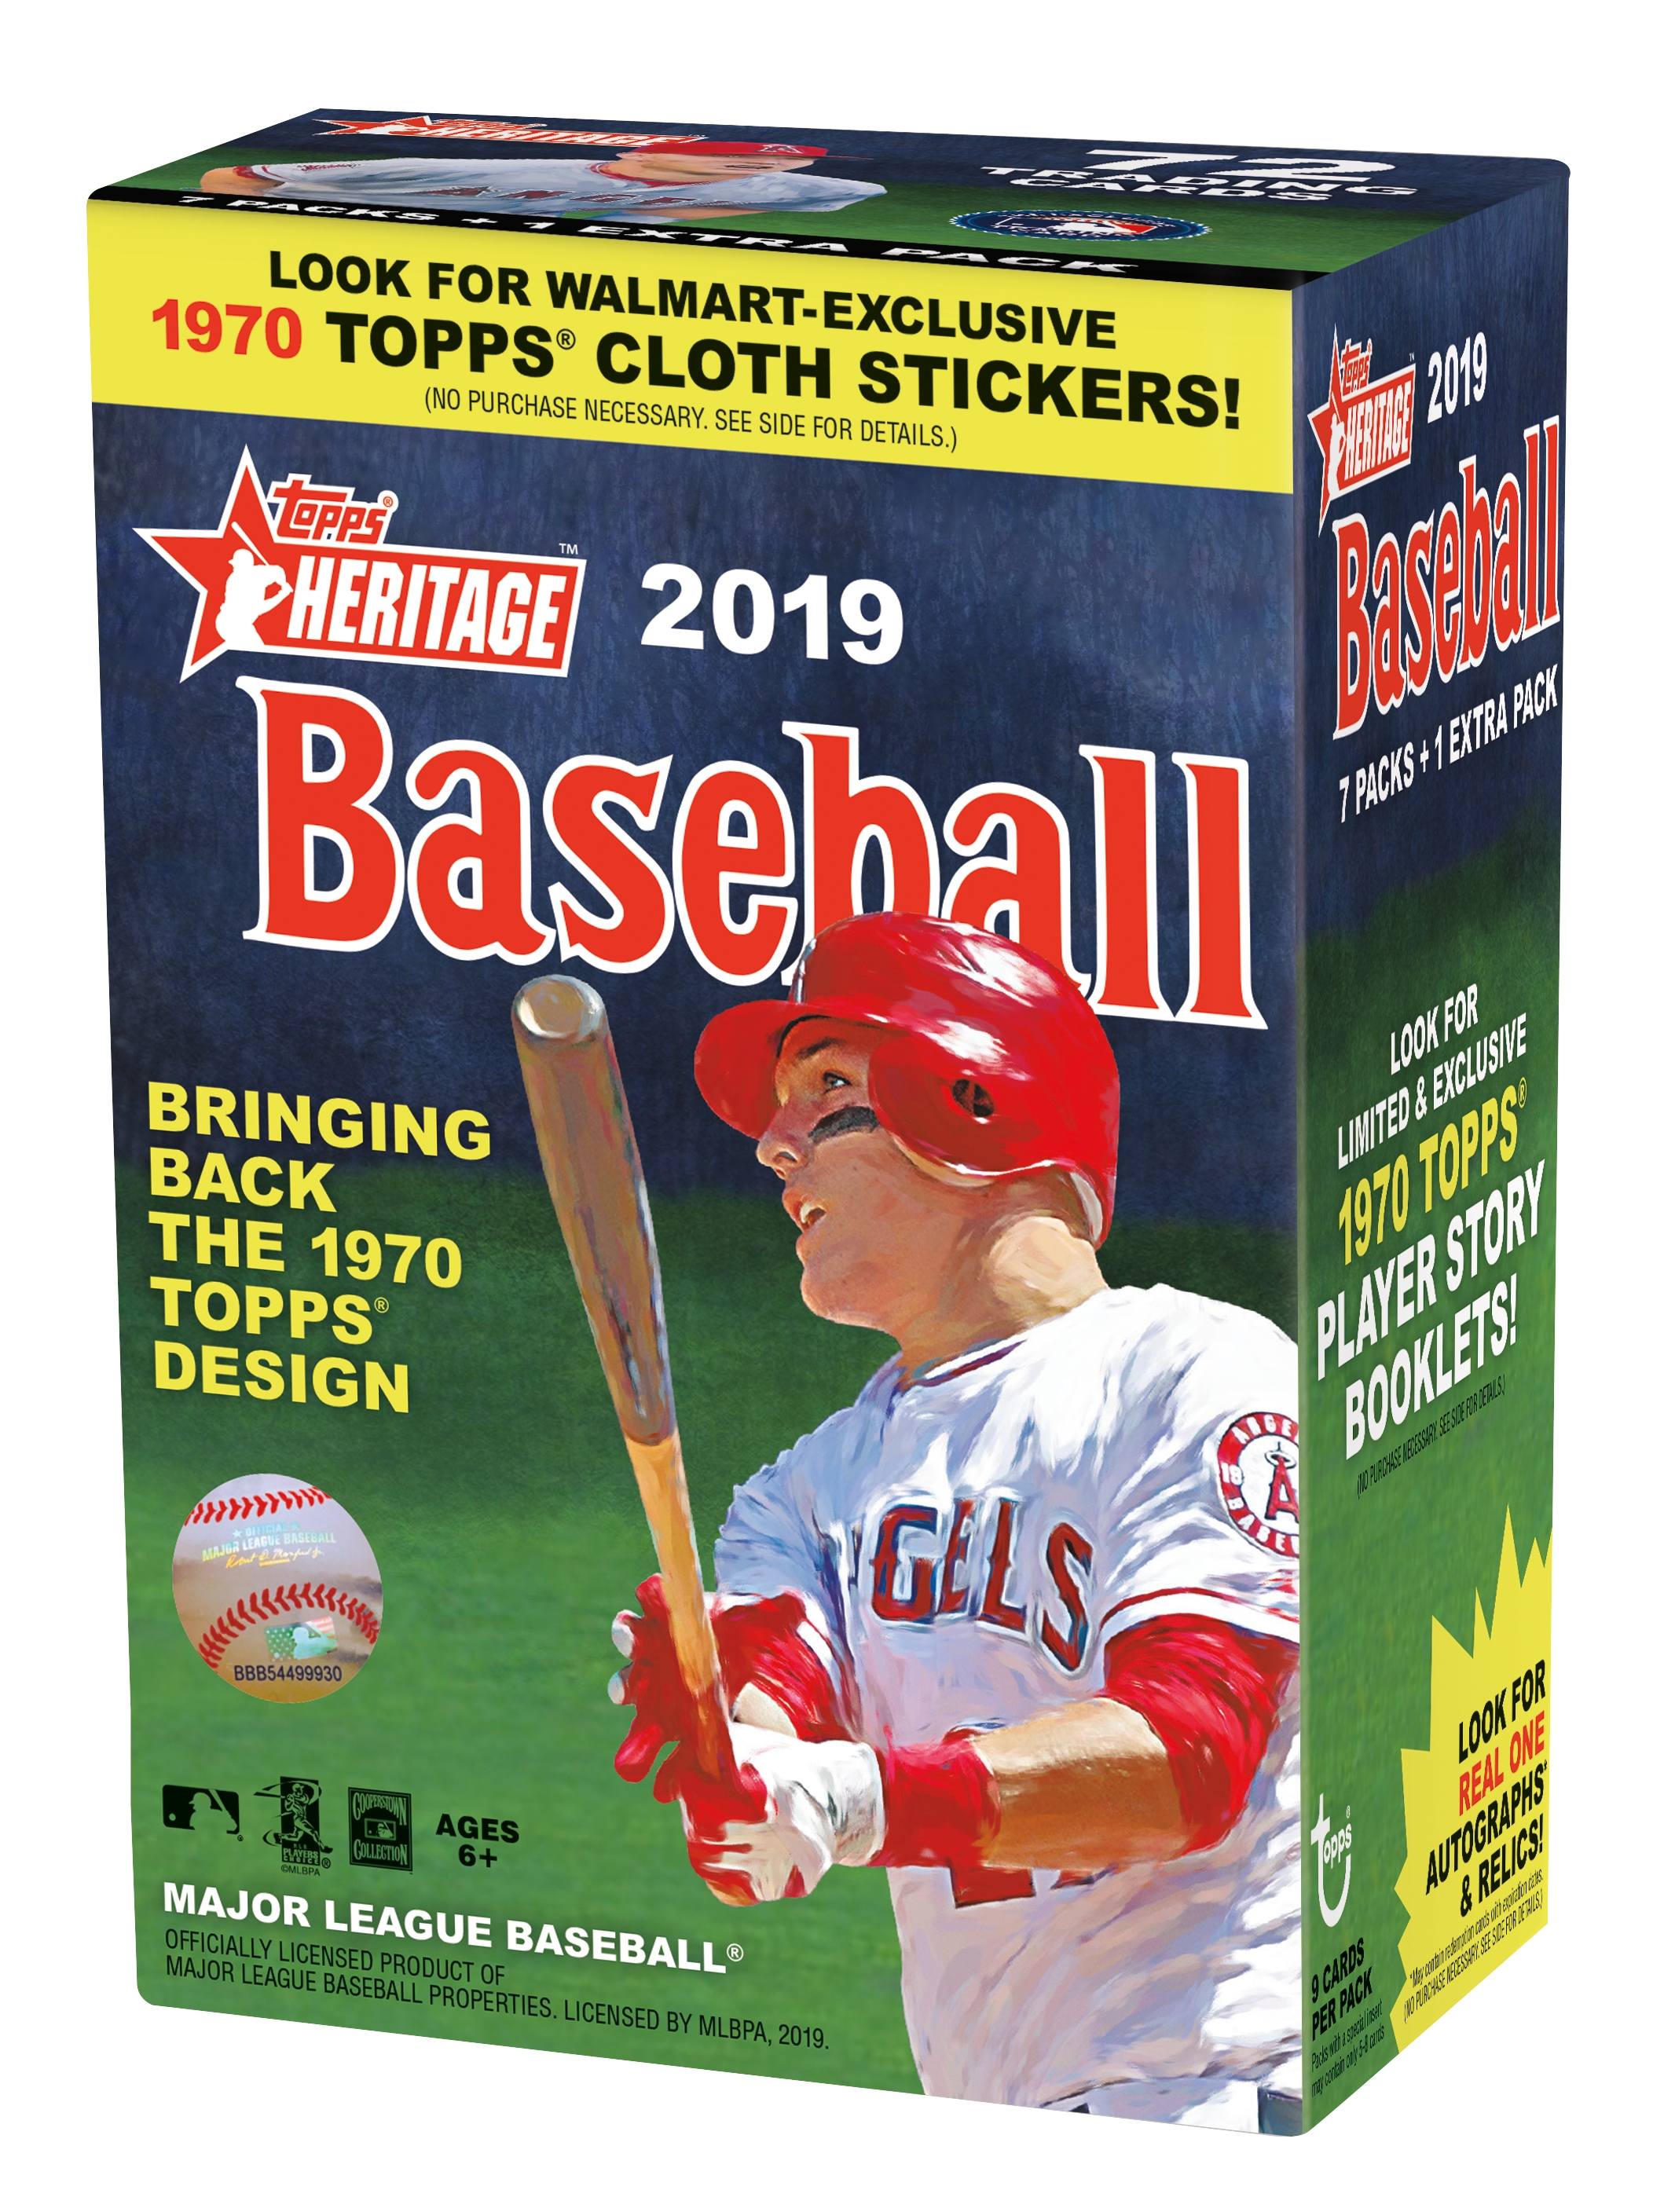 Topps Heritage 2019 Mlb Baseball Value Box Limited Walmart Exclusive 1970s Design Autographs Relics Rookies New Age Performers